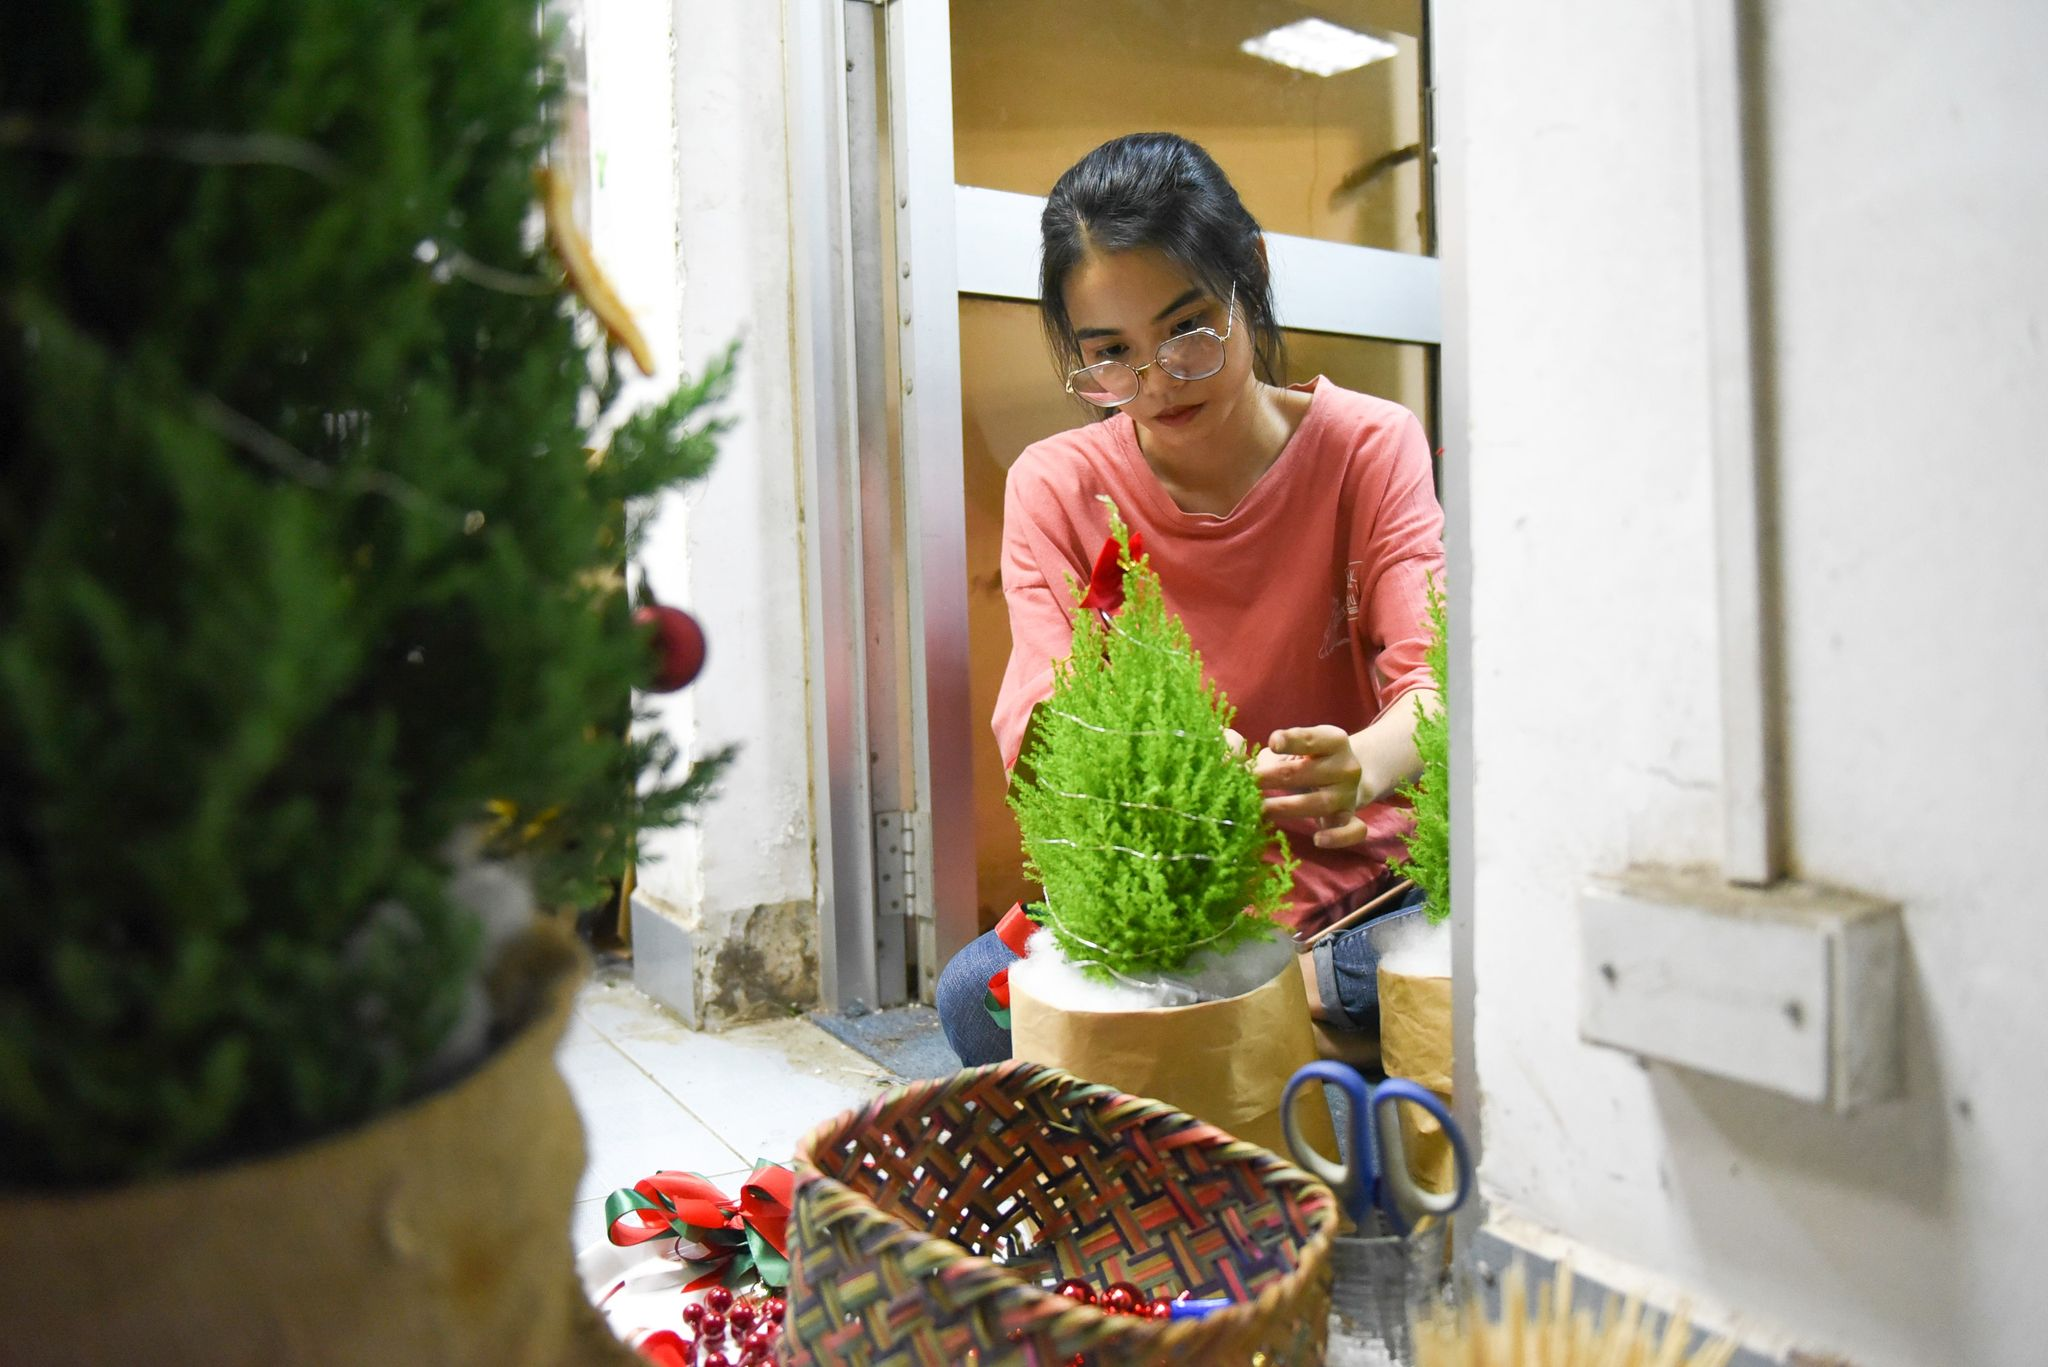 Staff Le Hong Nhien is decorating a lemon cypress at her flower shop in Ho Chi Minh City's District 3. Photo: Ngoc Phuong/ Tuoi Tre News